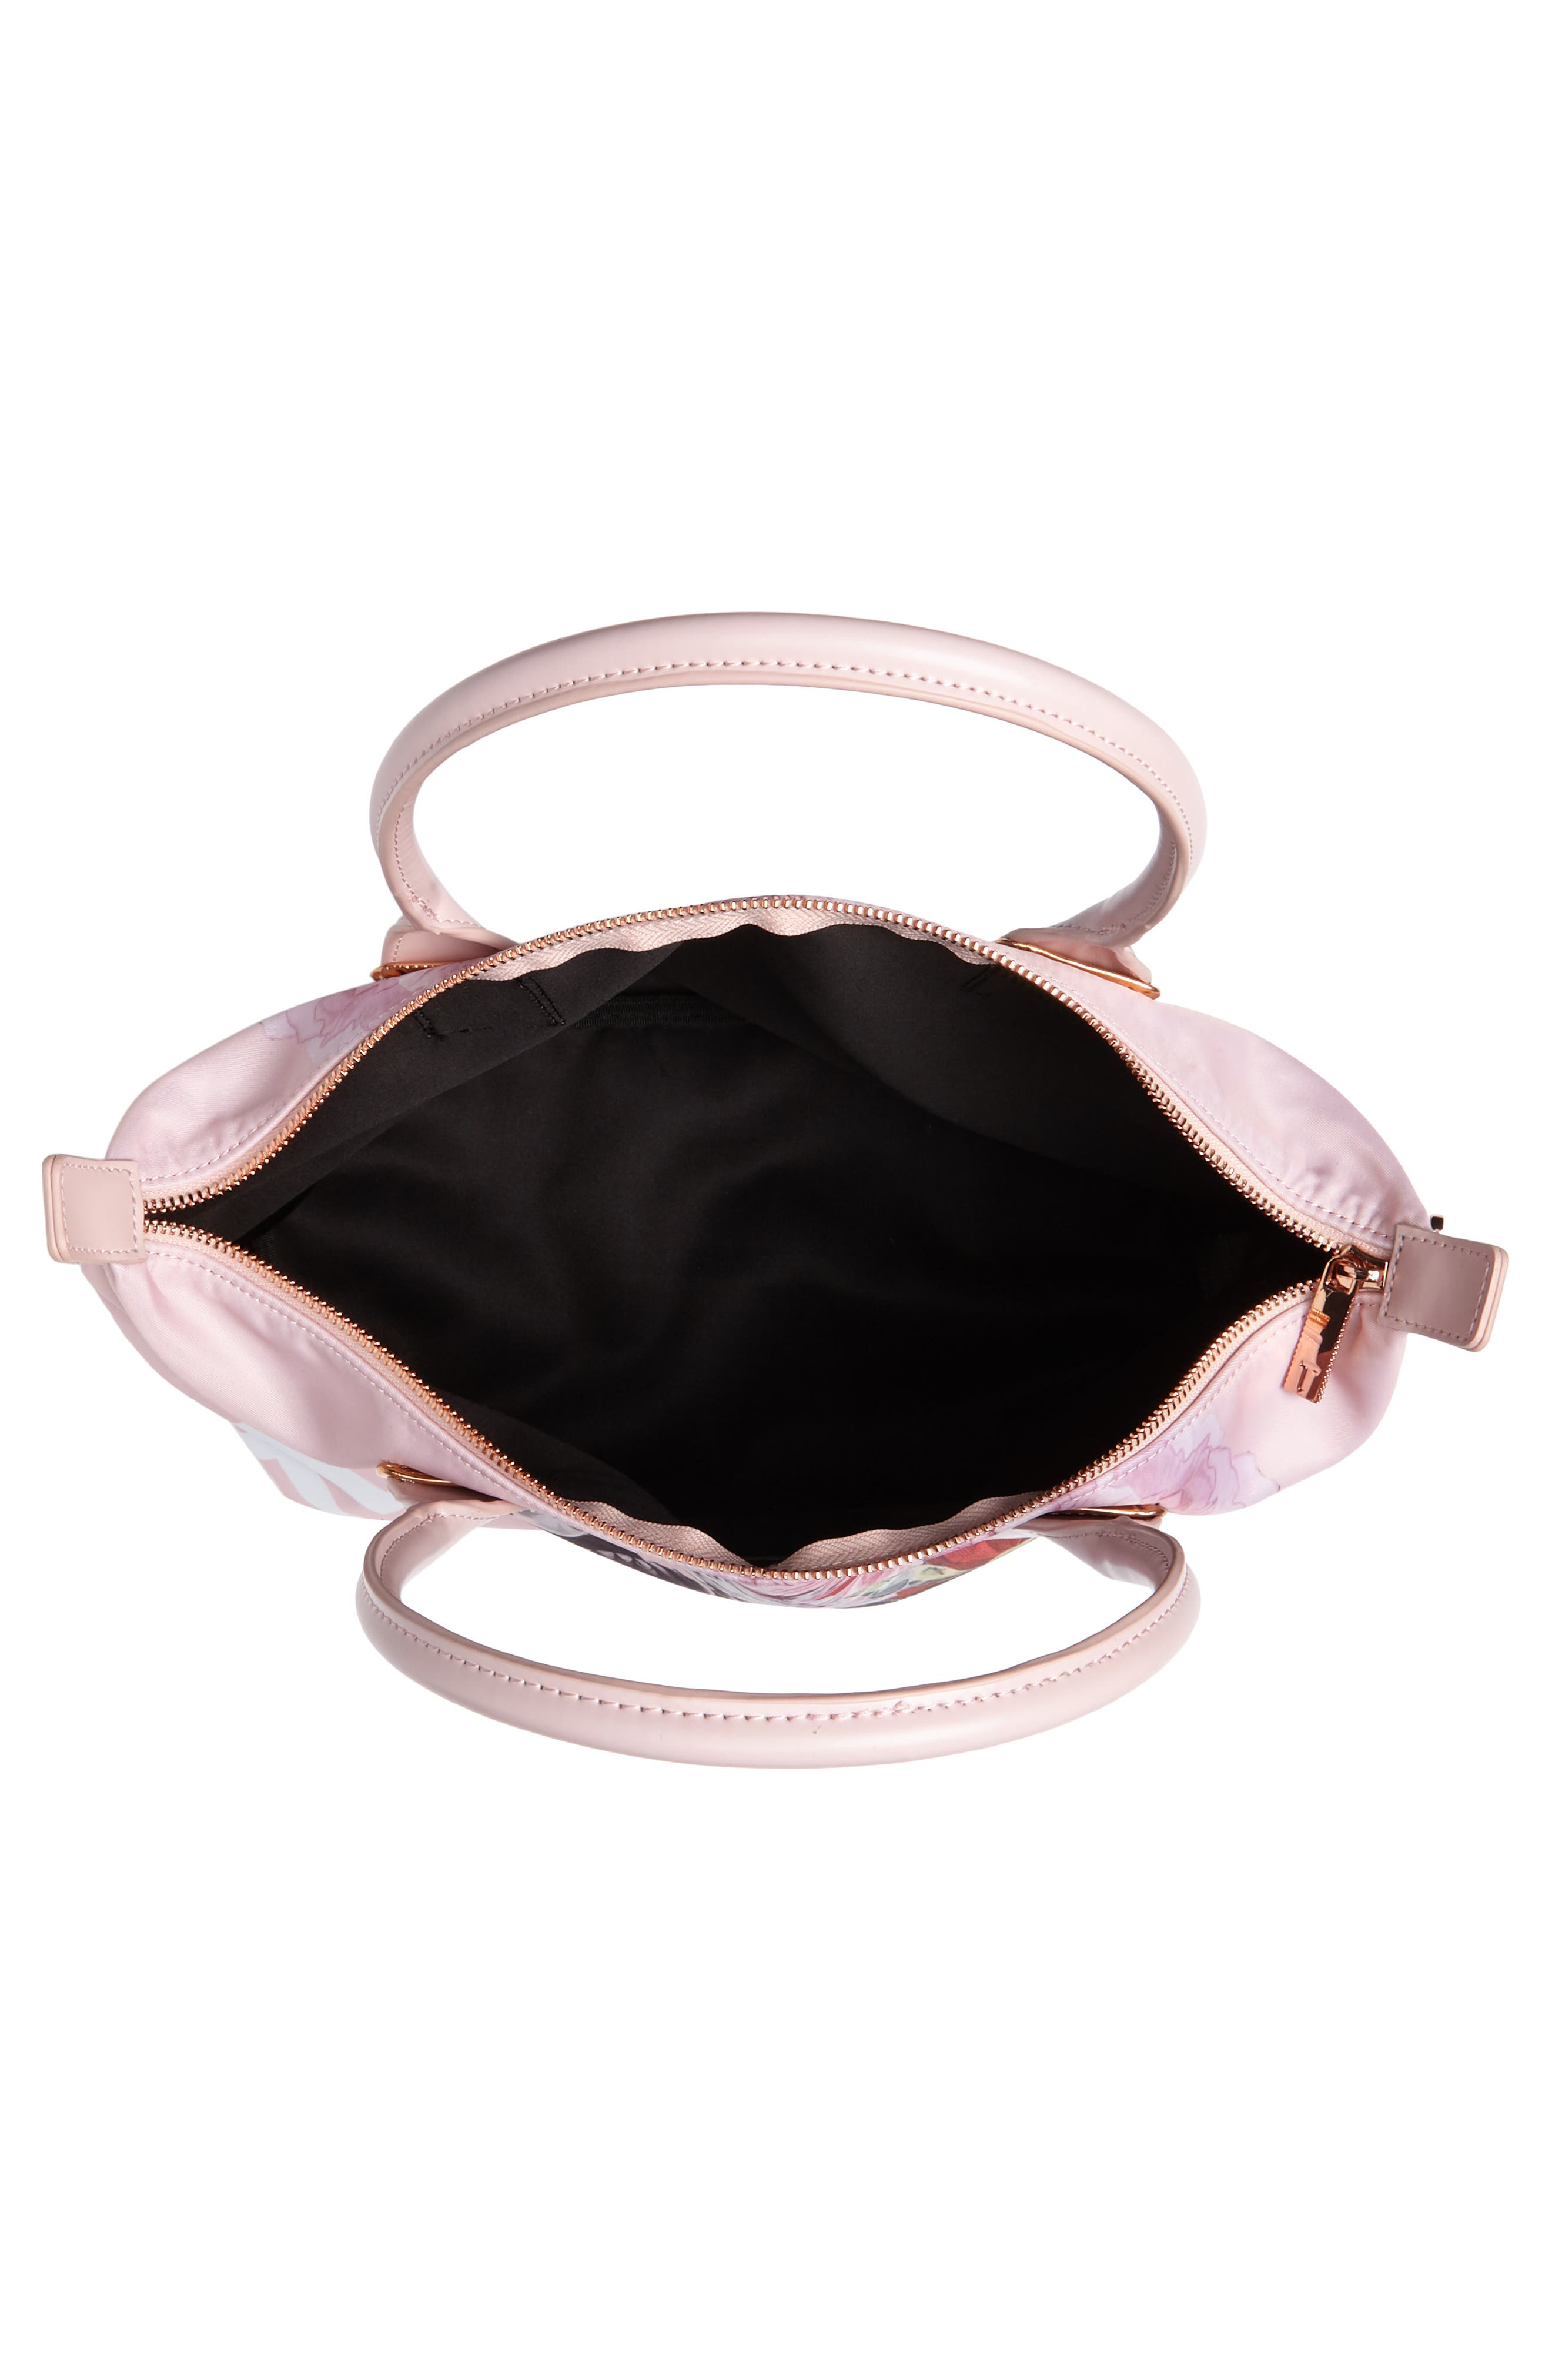 Small Palace Gardens Tote,                             Alternate thumbnail 4, color,                             Dusky Pink